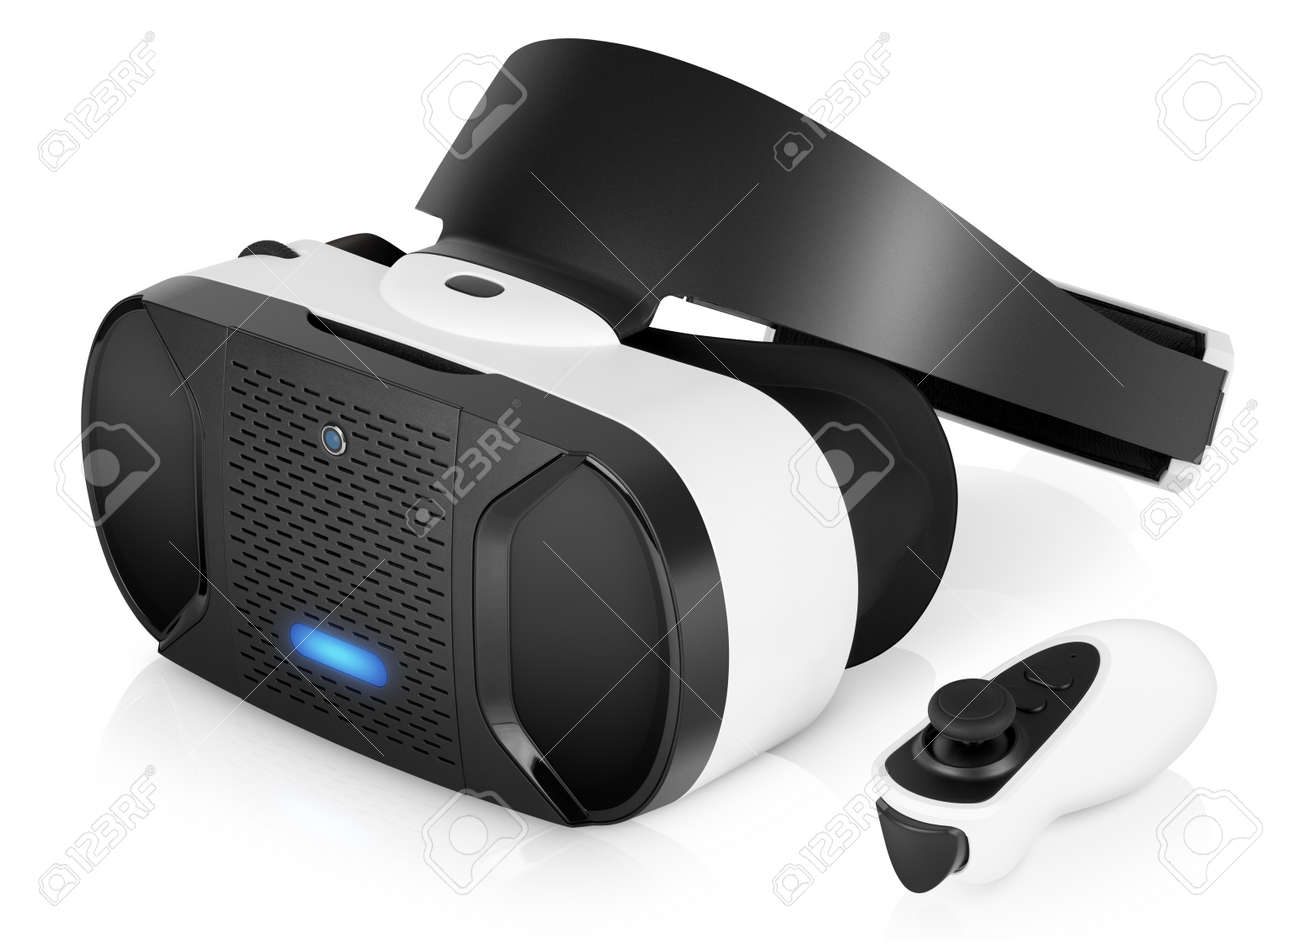 VR virtual reality headset half turned with game controller isolated on white background. VR is the future of gaming that gives players a new awesome experience. - 55674440